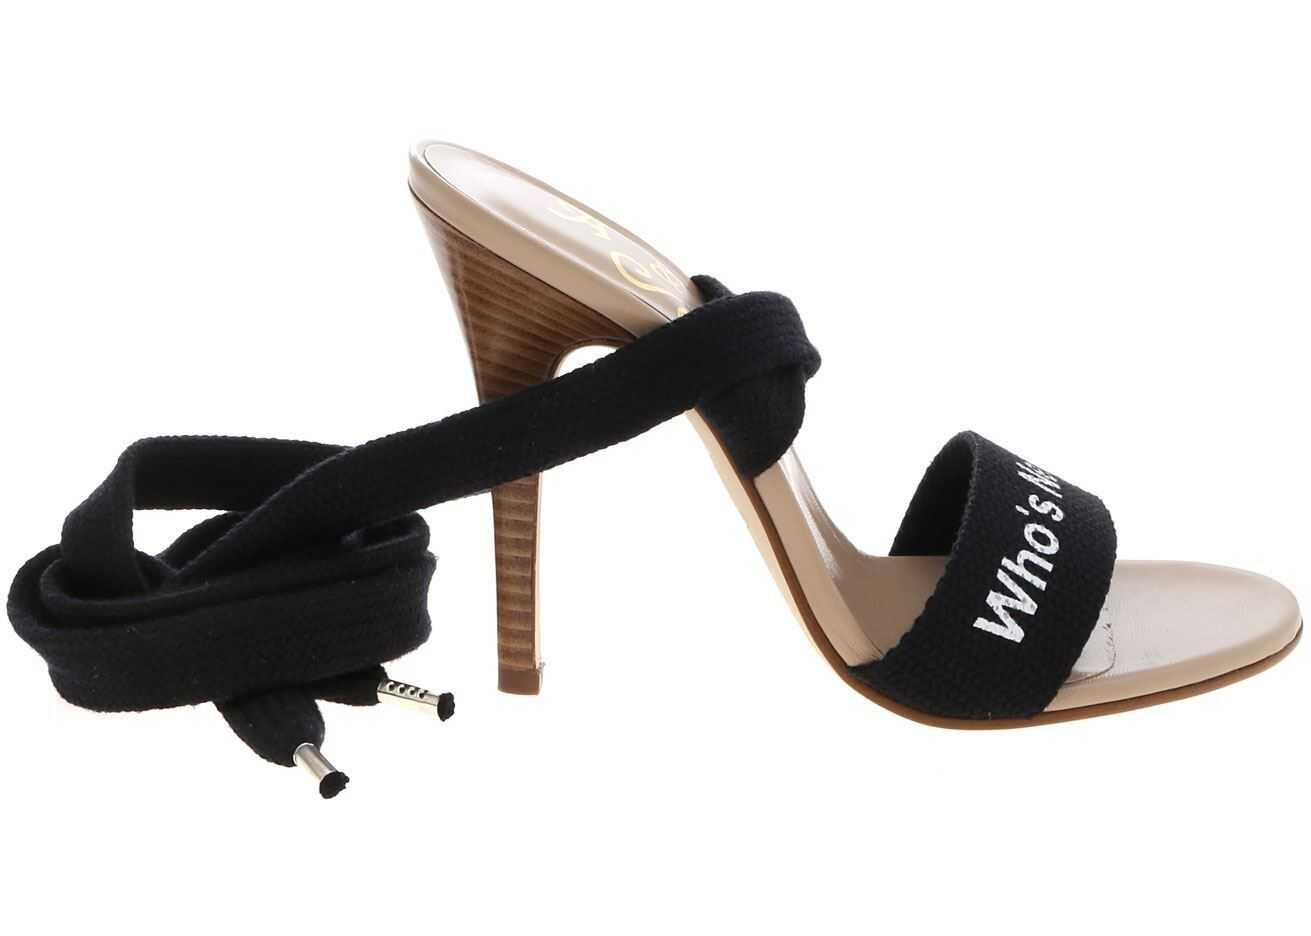 Vivienne Westwood Holiday Sandals In Gray And Black Black